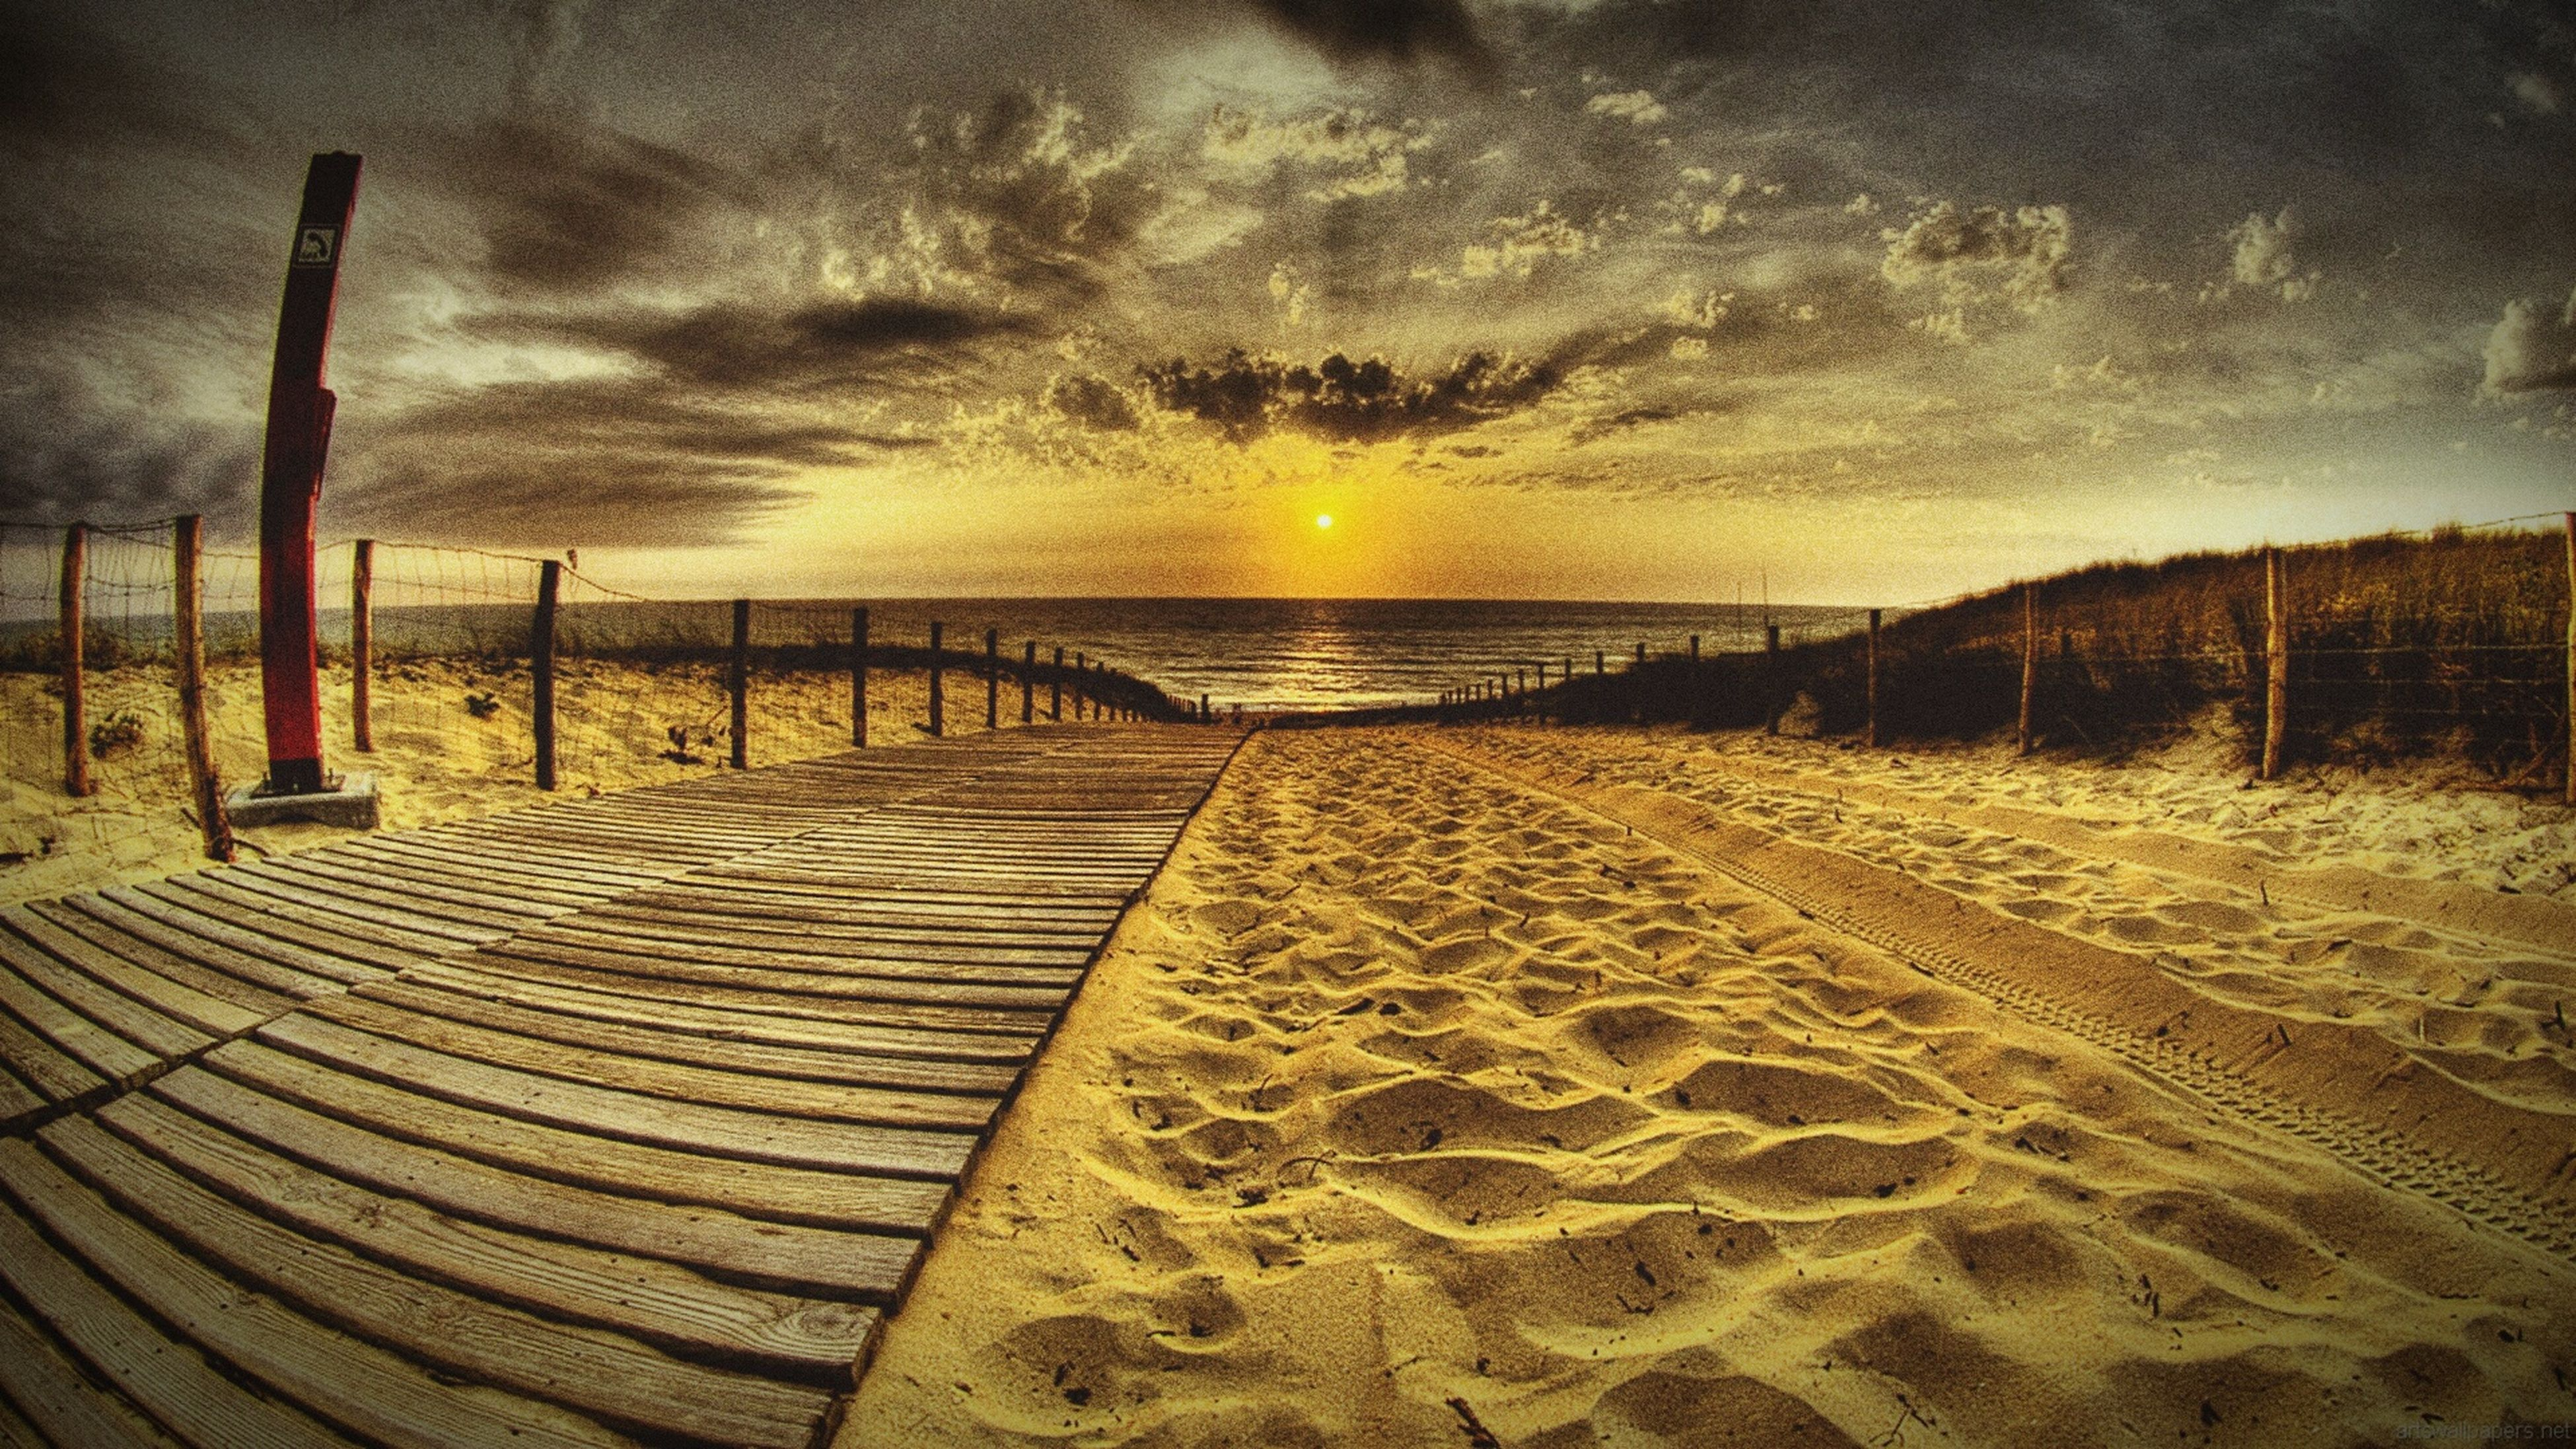 tranquility, sea, sky, tranquil scene, horizon over water, beach, sunset, scenics, the way forward, beauty in nature, water, nature, cloud - sky, sand, shore, diminishing perspective, idyllic, empty, railing, cloudy